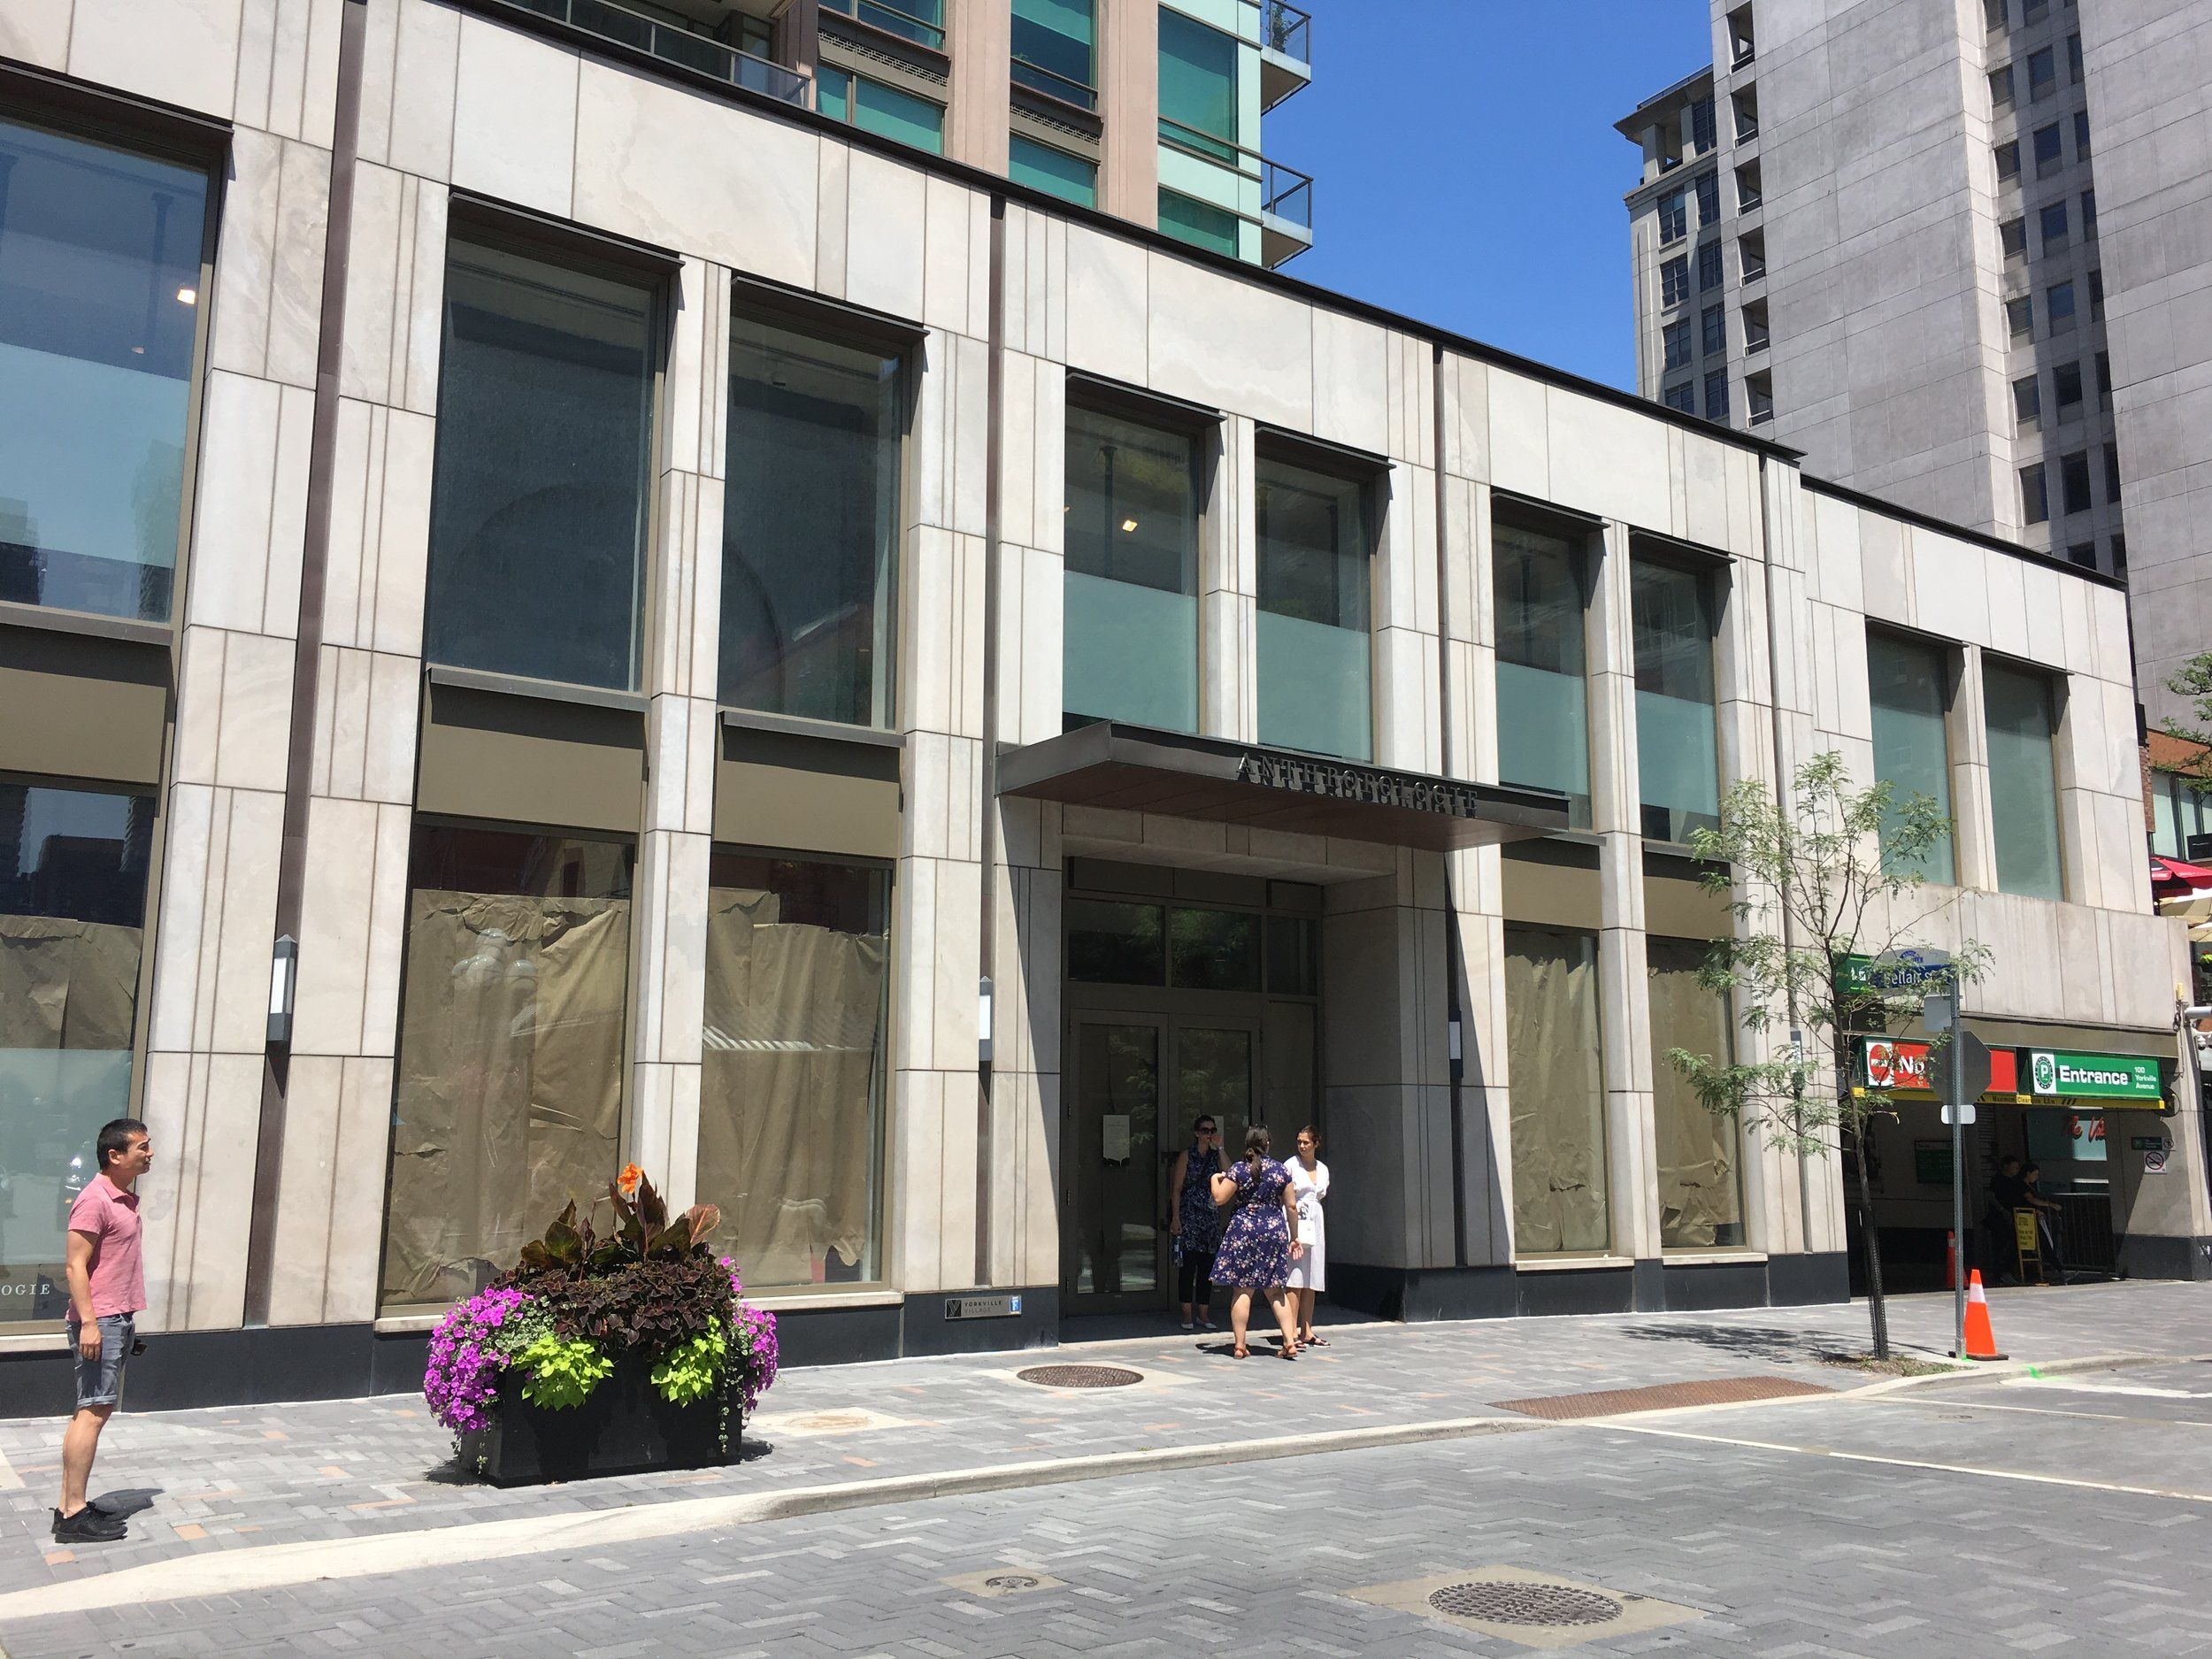 FORMER ANTHROPOLOGIES STORE IN YORKVILLE PHOTO: CRAIG PATTERSON